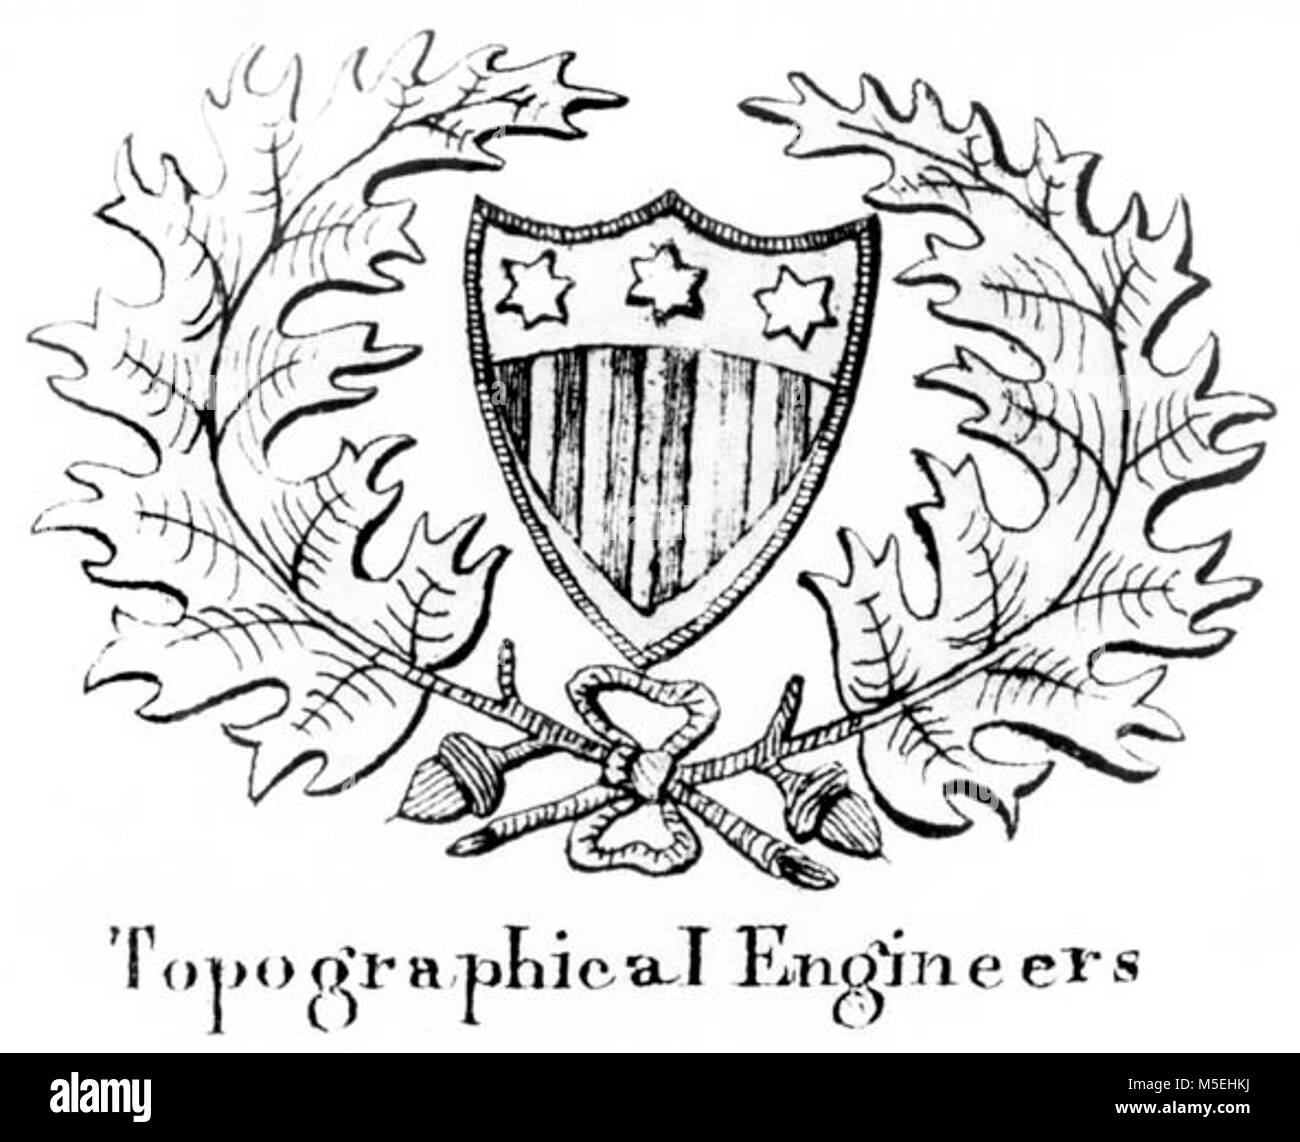 Grand Canyon Powell Expedition   1860 INSIGNIA OF THE CORPS OF TOPOGRAPHICAL ENGINEERS - USED ON POWELL'S SECOND - Stock Image